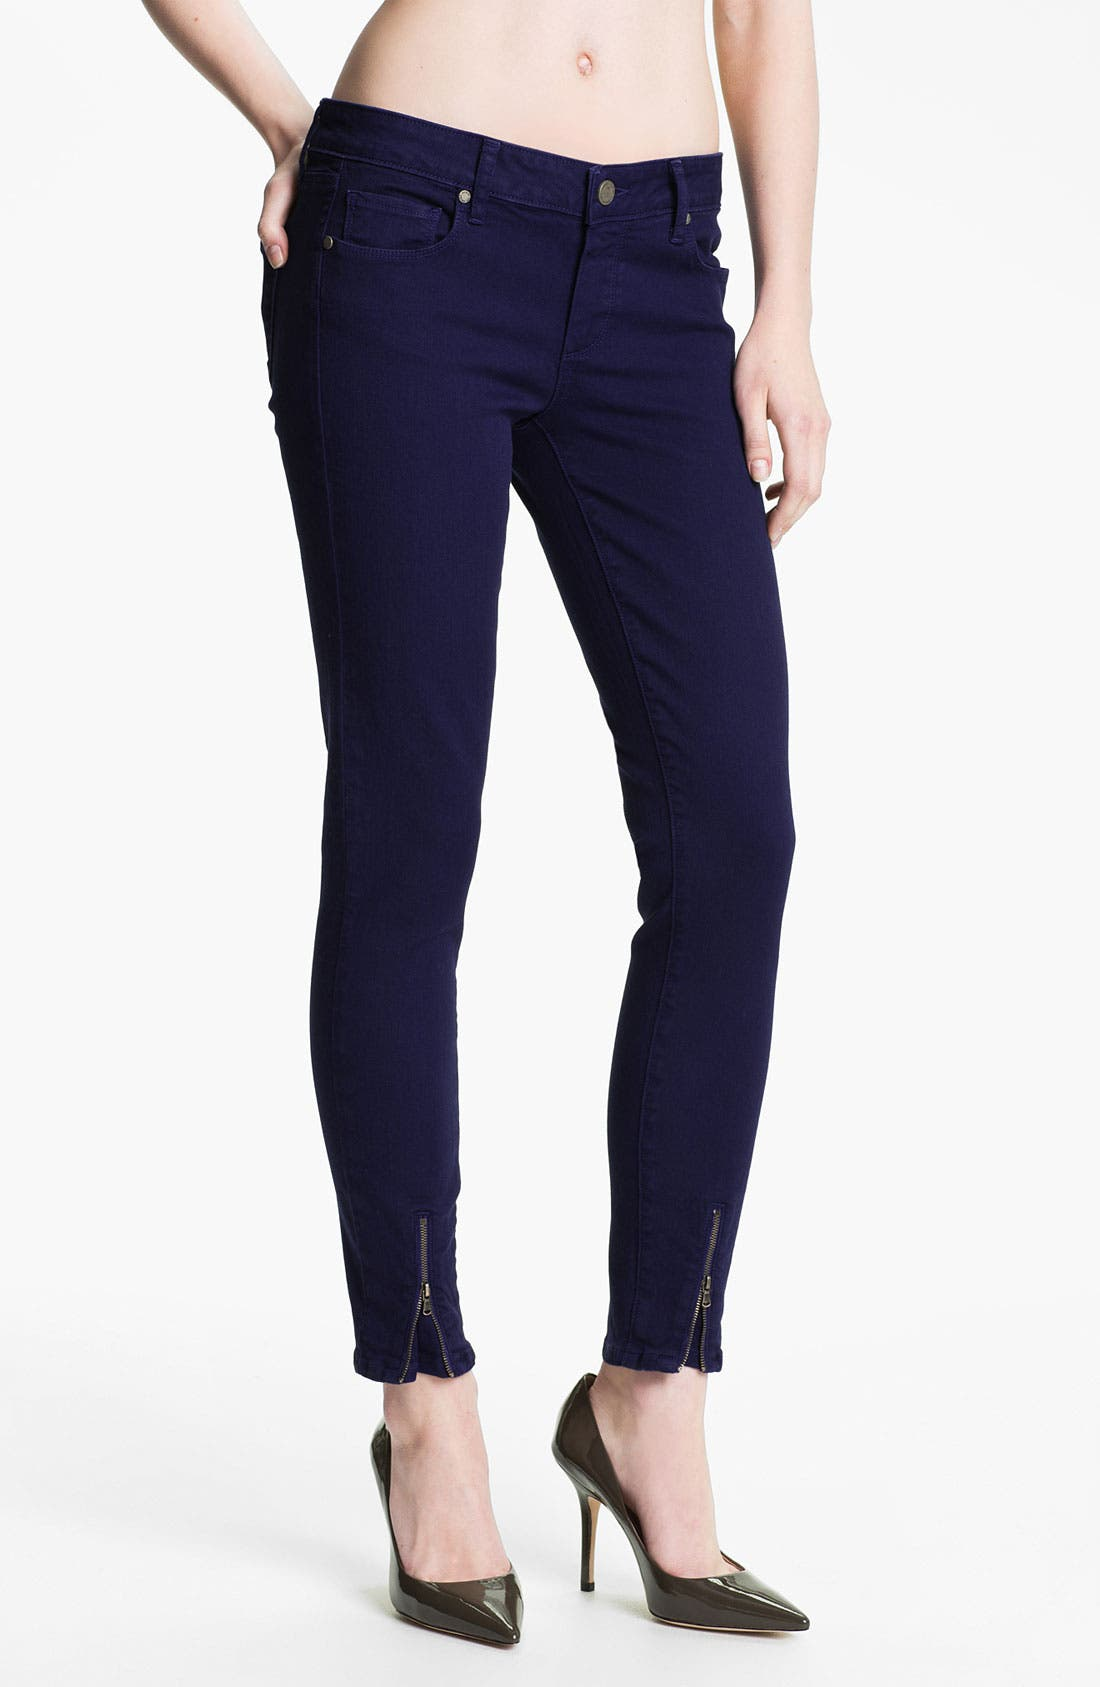 Alternate Image 1 Selected - Paige Denim Ankle Zip Skinny Jeans (Pacific Dusk)